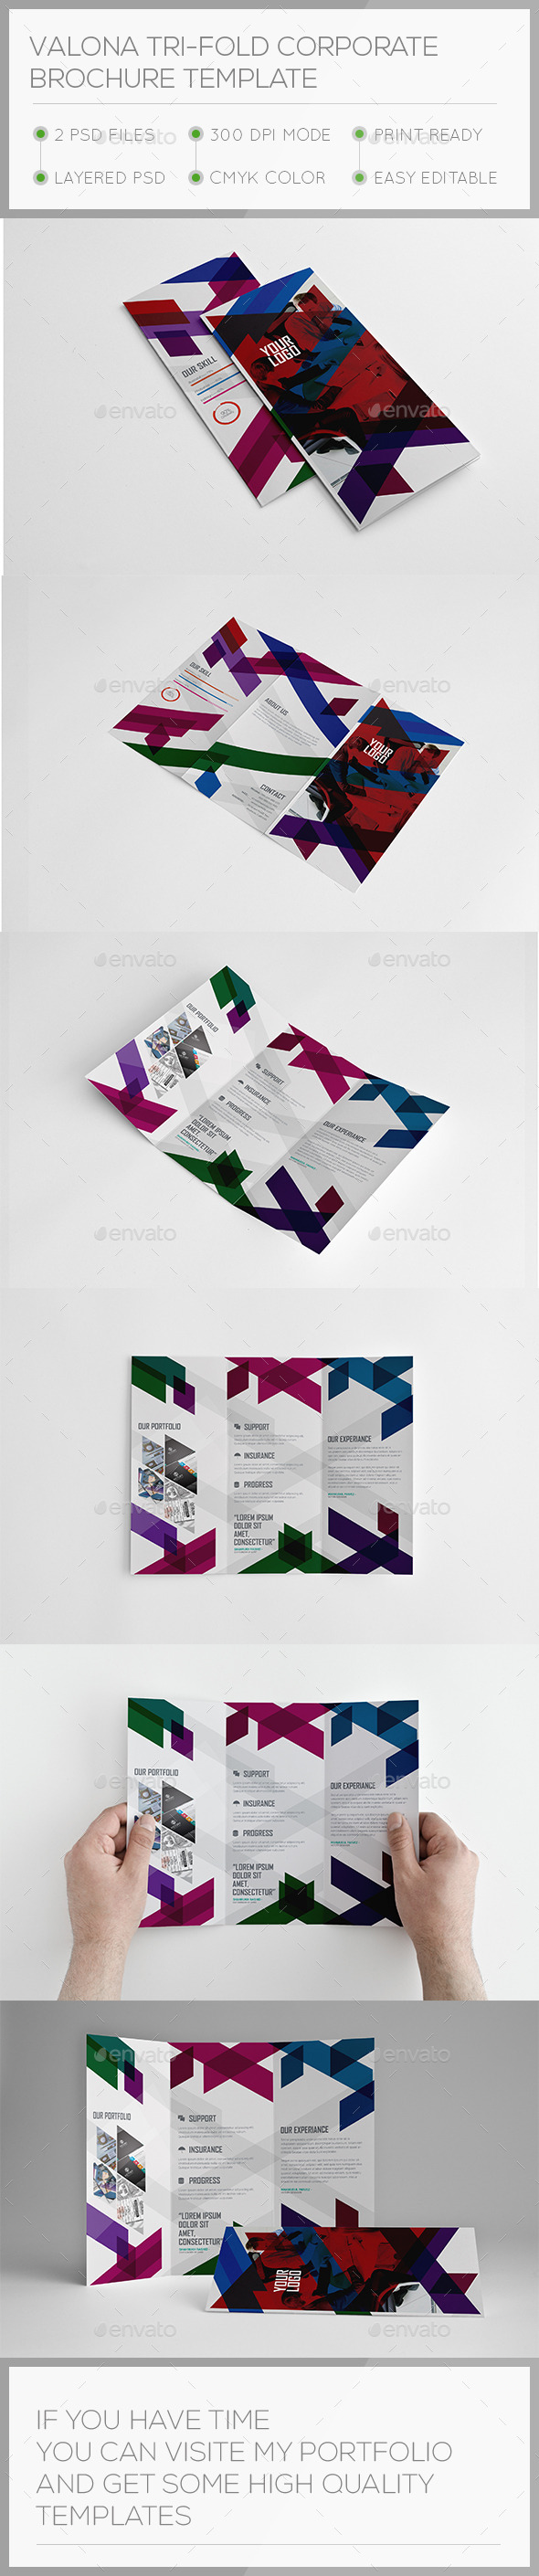 GraphicRiver Valona Corporate Trifold Brochure Template 11110493